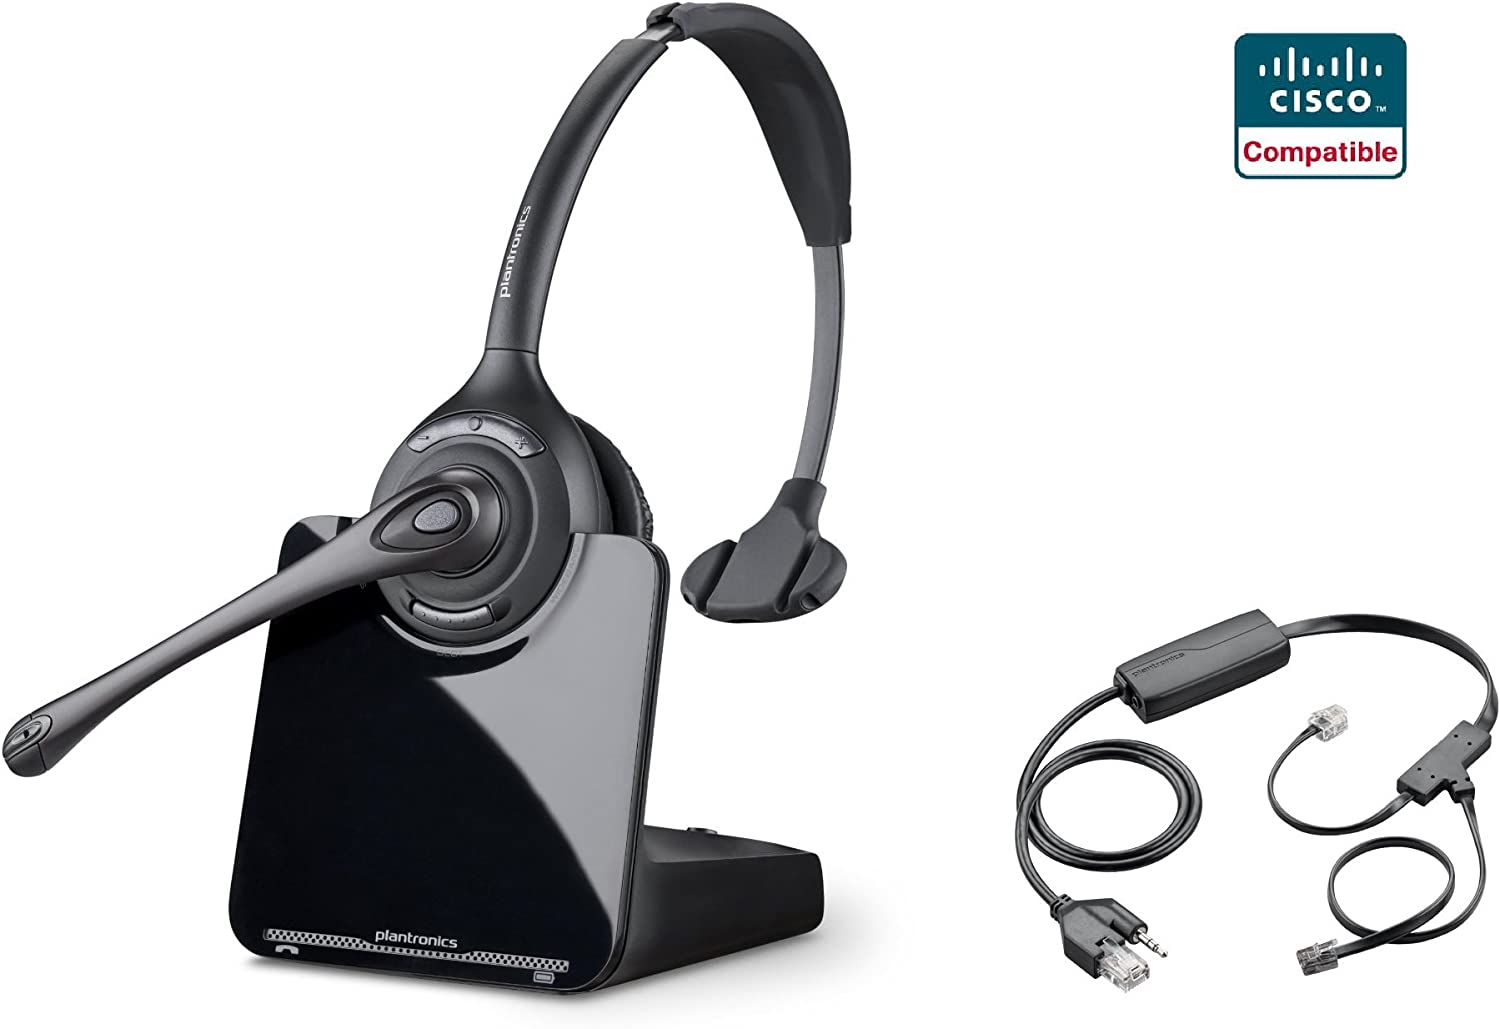 Amazon Com Cisco Compatible Plantronics Cs510 Voip Wireless Headset Bundle With Electronic Remote Answer End And Ring Alert Ehs For 6945 7821 7841 7861 7942g 7945 7945g 7962g 7965g 7975 7975g Office Products